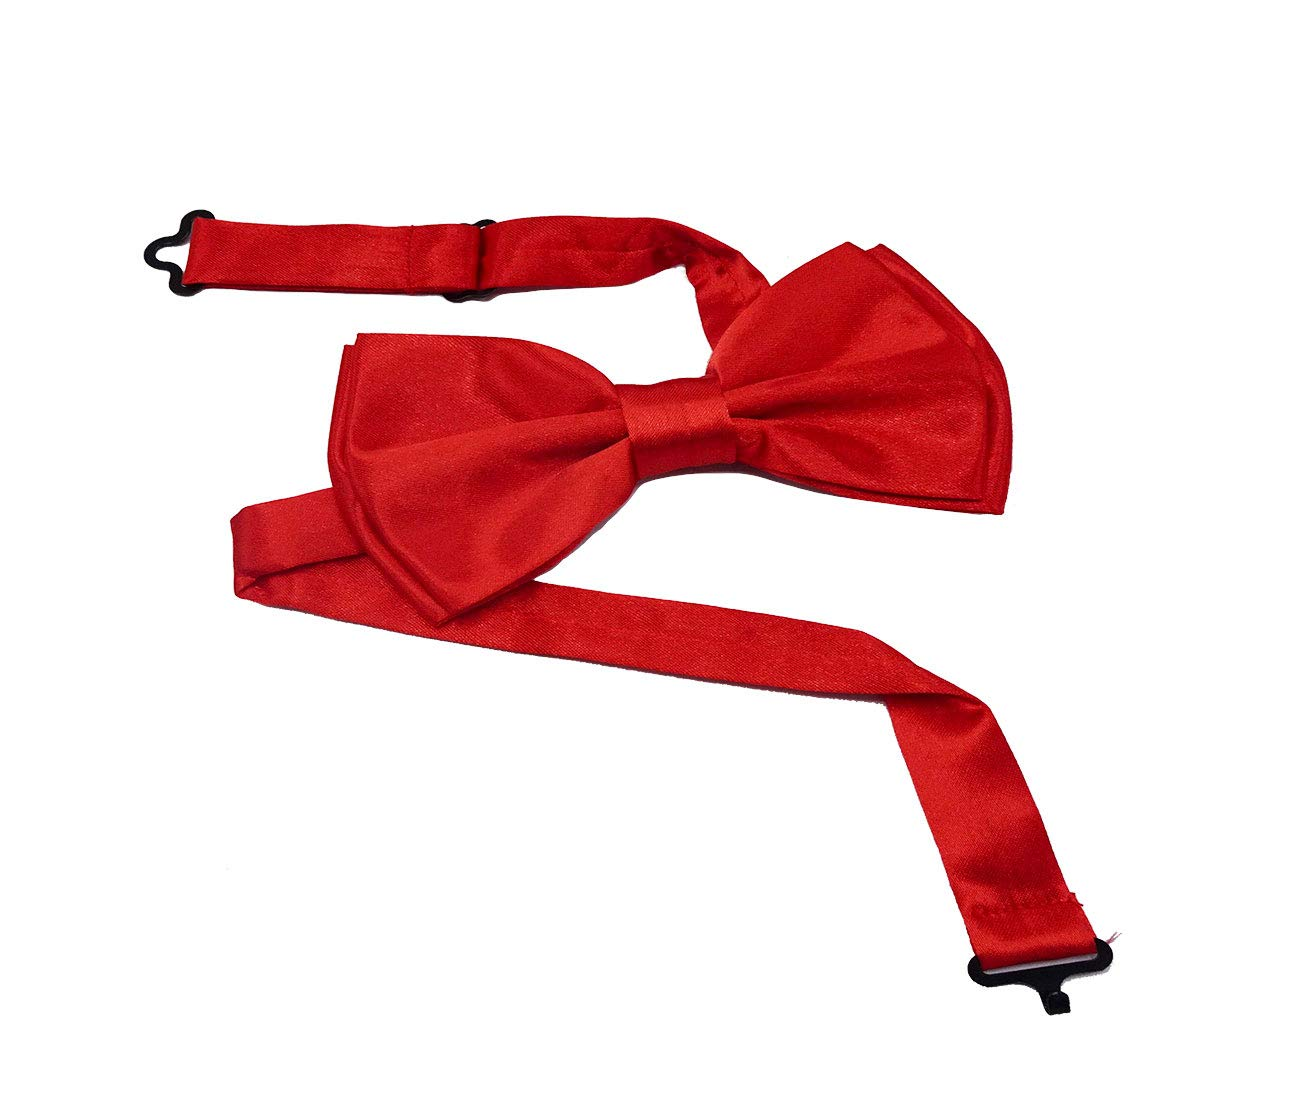 Bow tie and Suspenders for Men - Premium quality Bowtie and Suspenders Set - with Gift Box (Red)